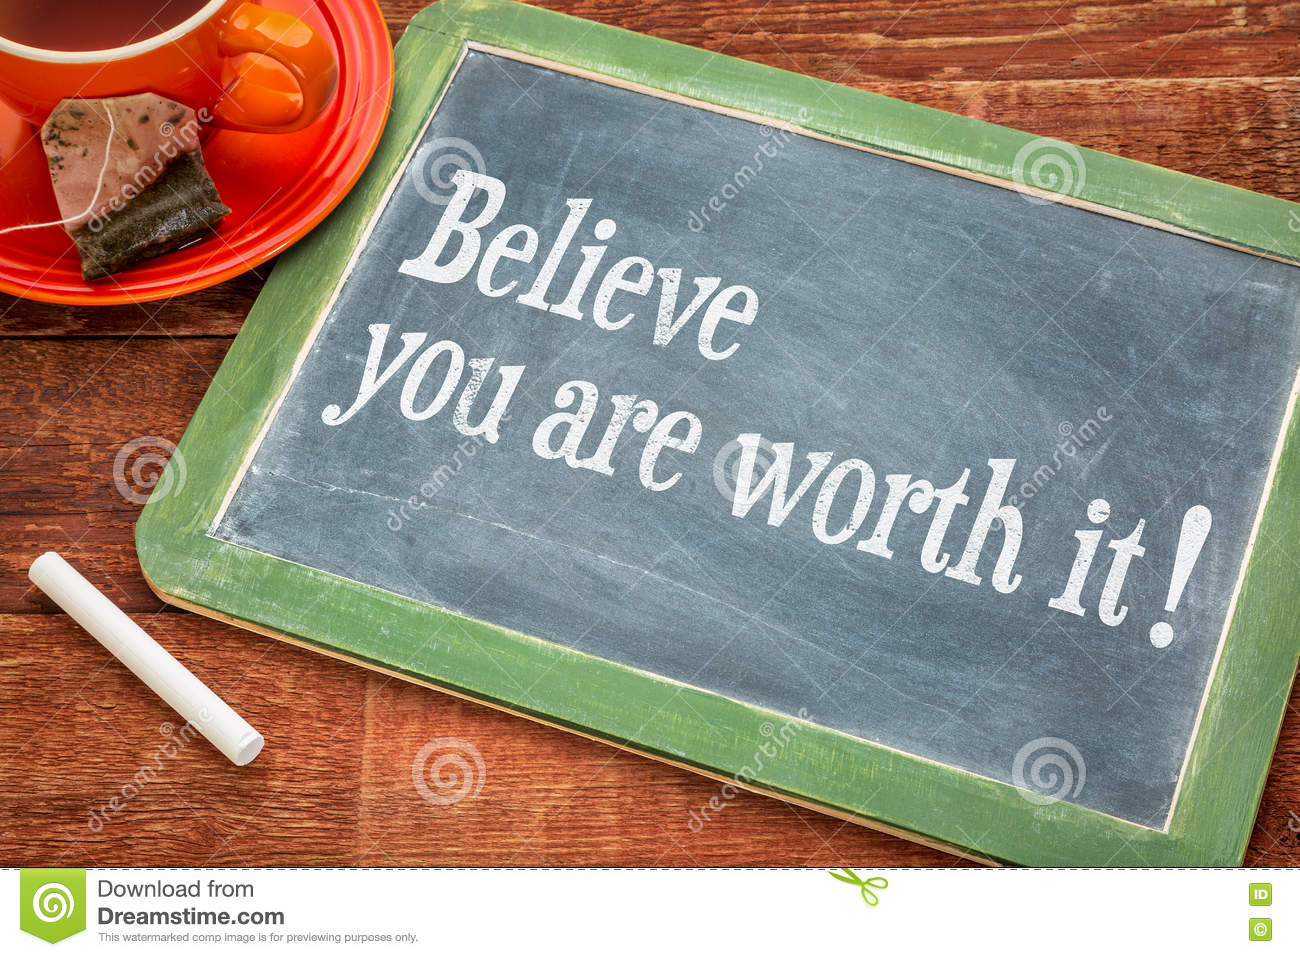 Believe you are worth it